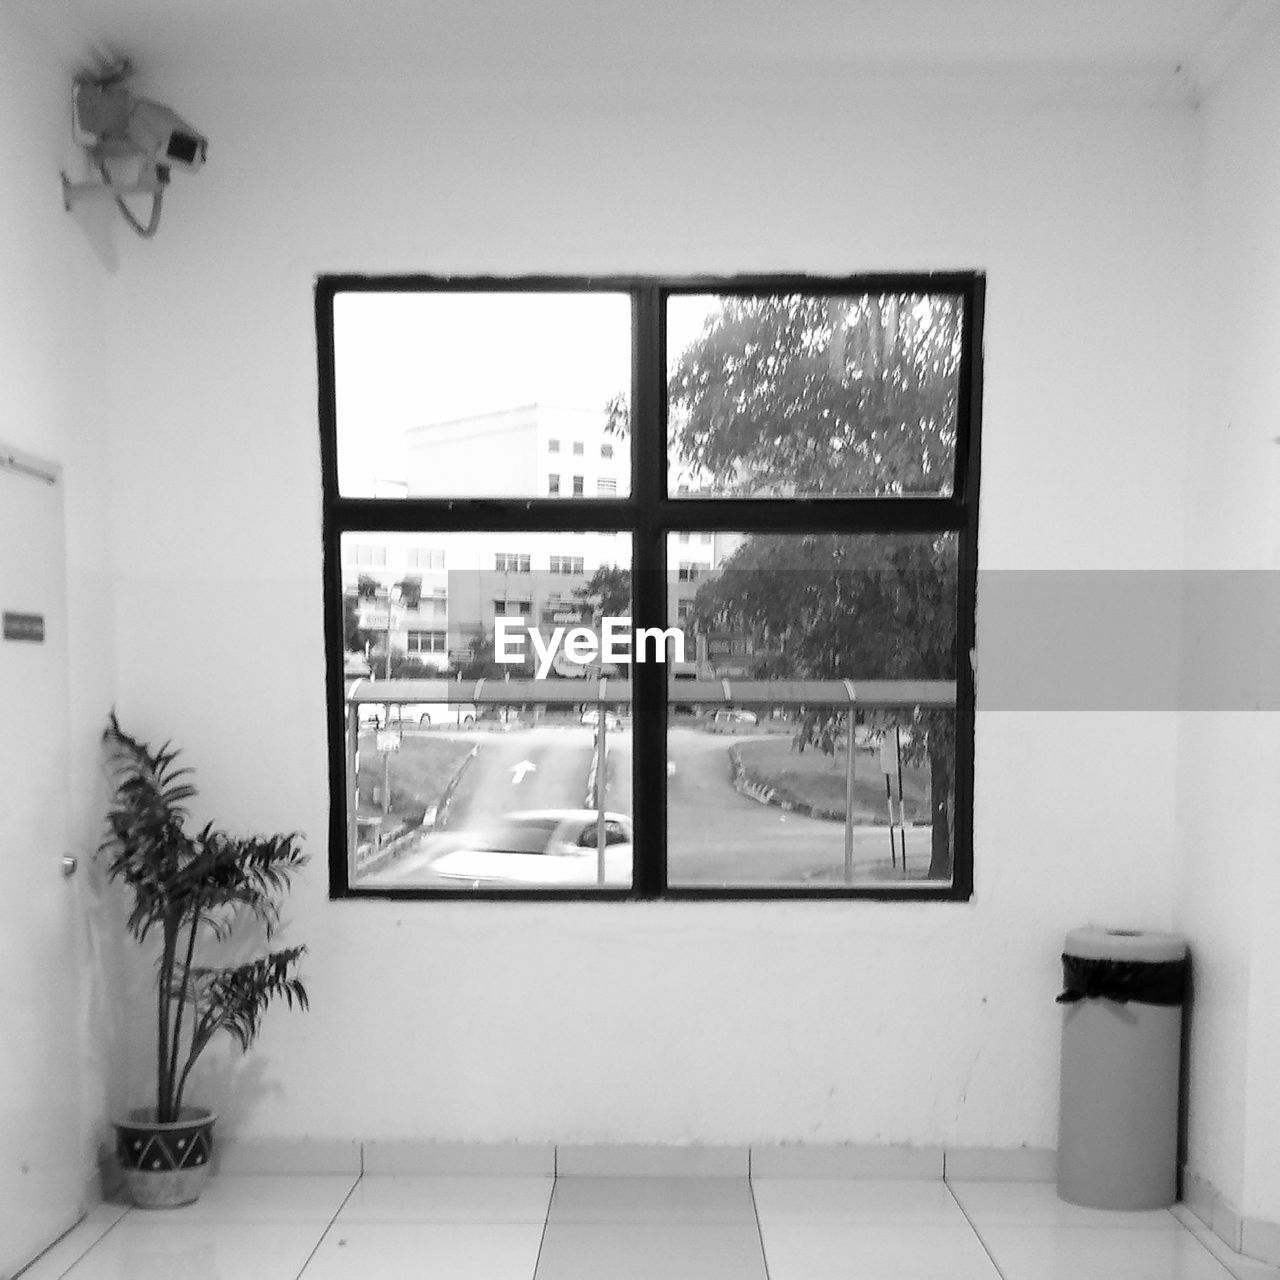 window, indoors, architecture, no people, glass - material, built structure, transparent, day, domestic room, plant, nature, home interior, building, tree, potted plant, city, house, sky, apartment, window frame